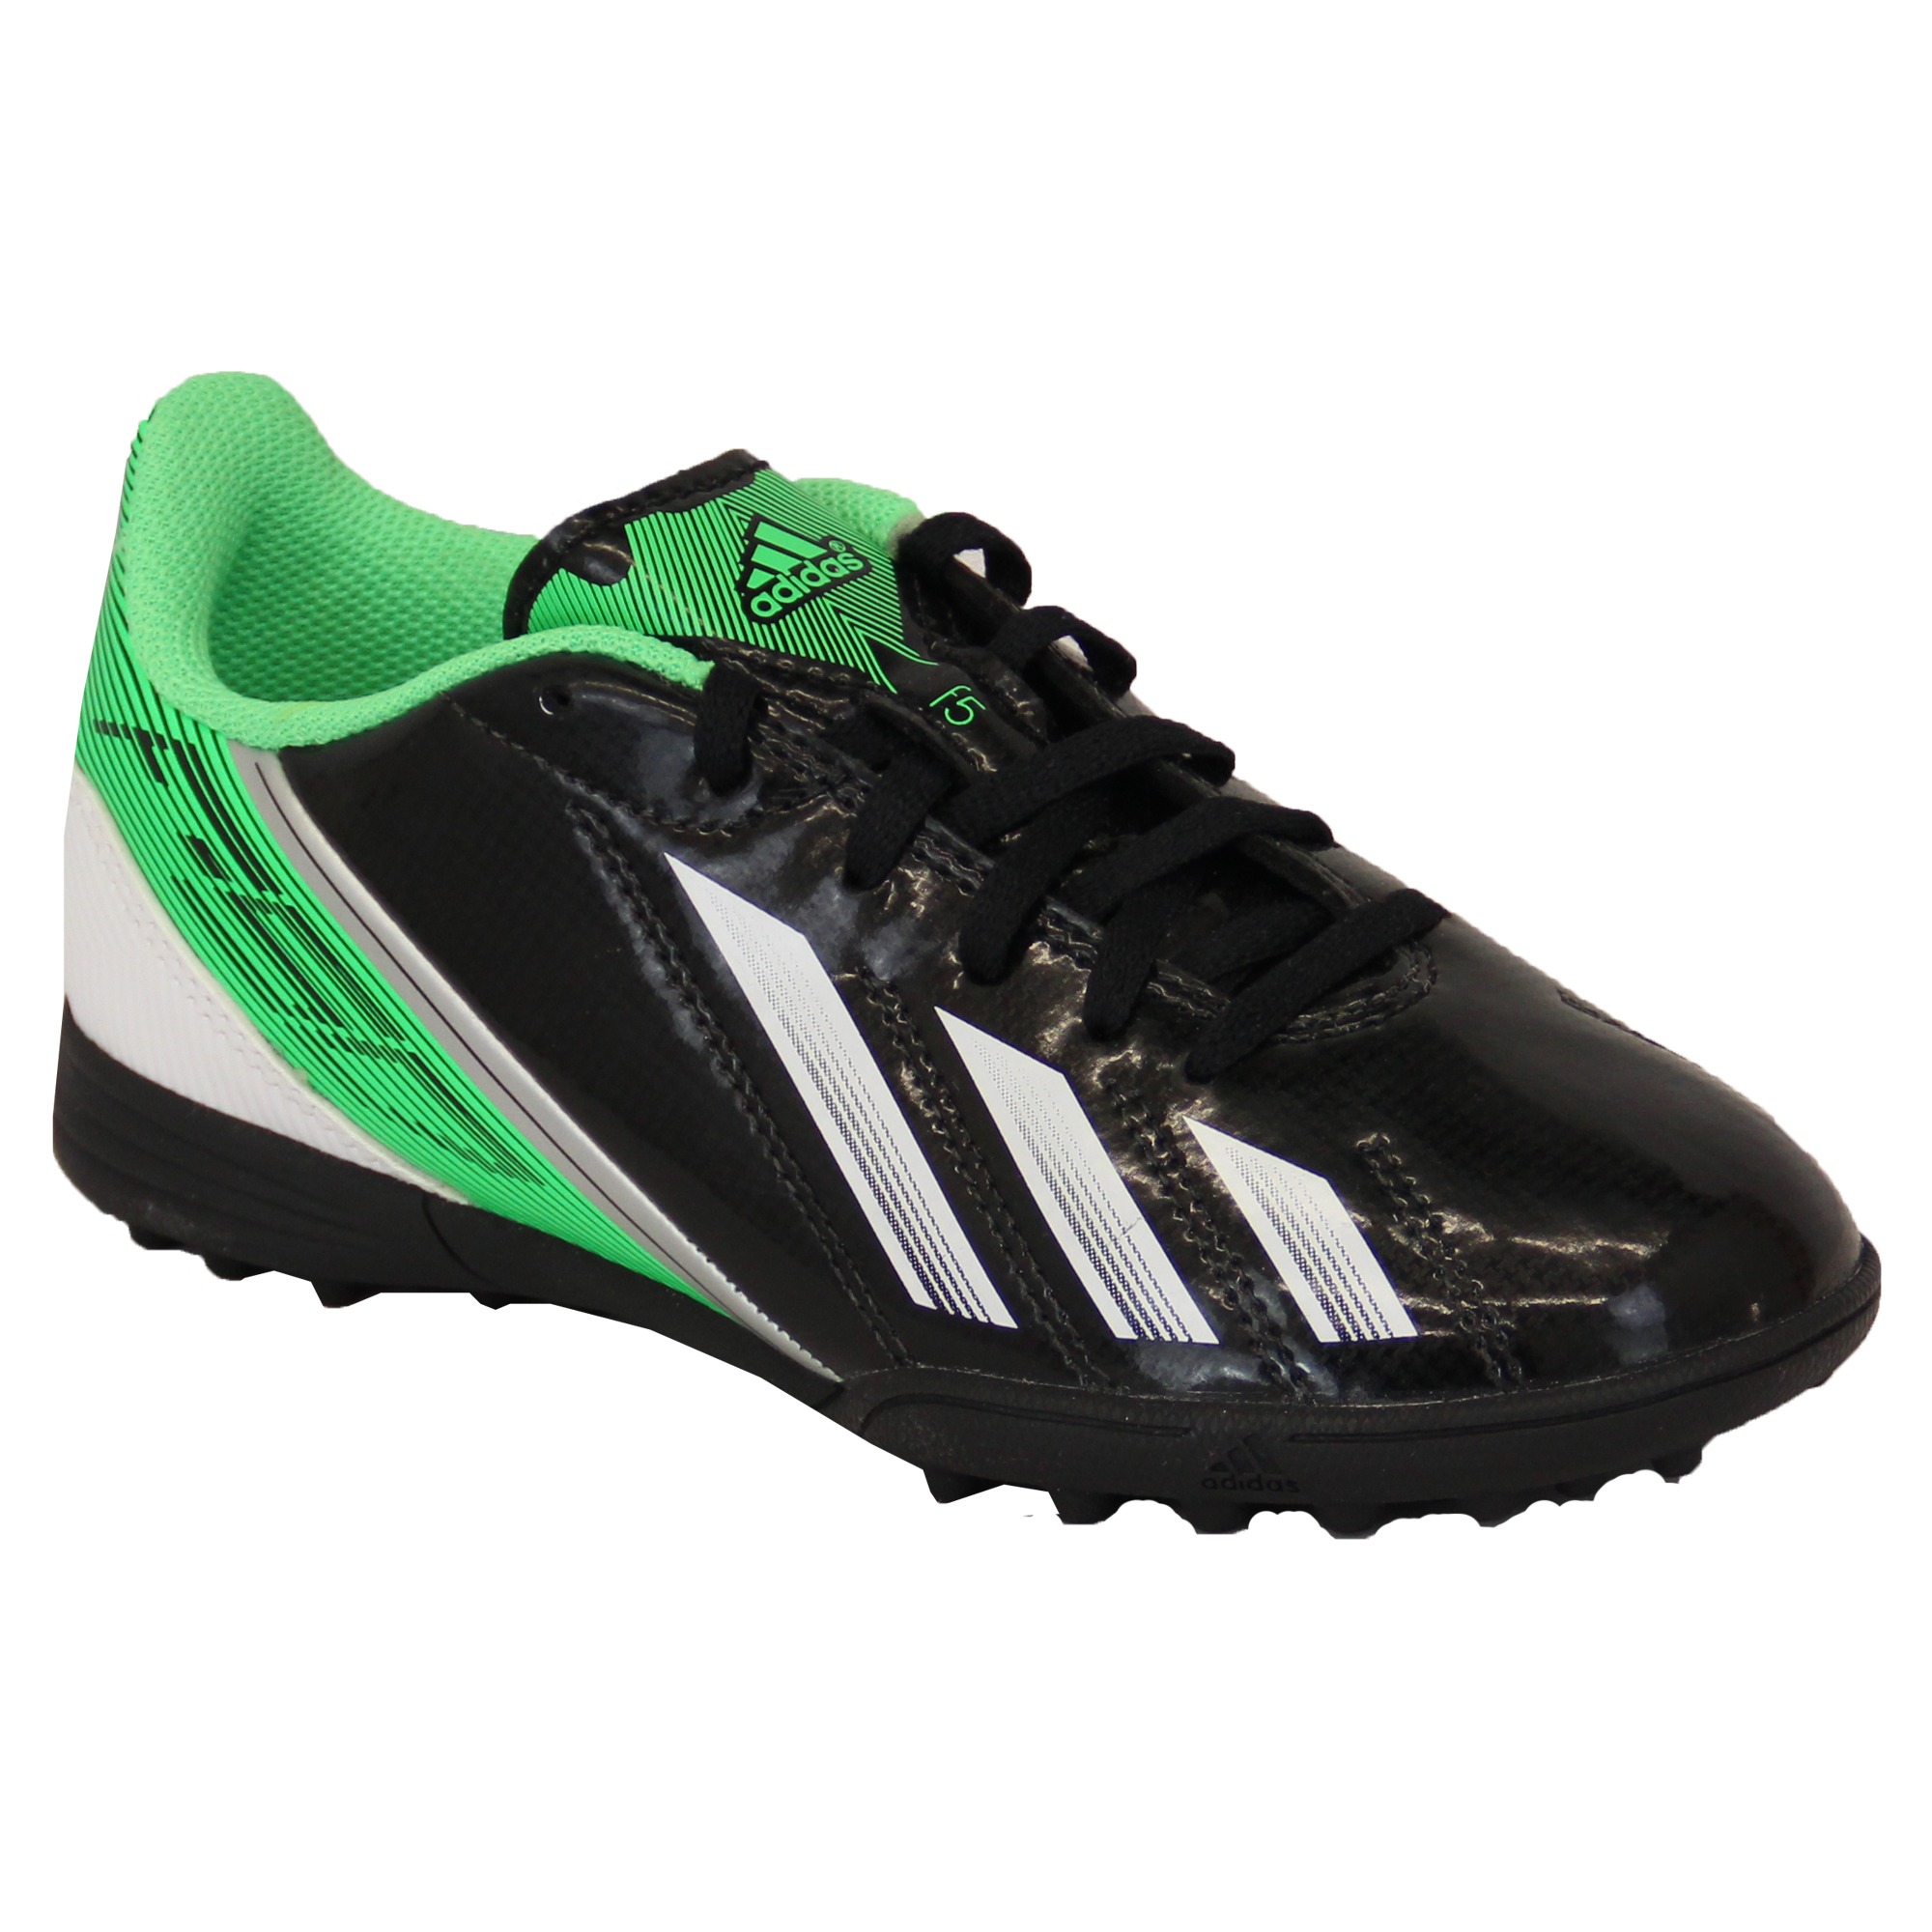 Boys-ADIDAS-Trainers-Kids-Football-Soccer-Astro-Turf-Shoes-Lace-Up-Neon-Youth thumbnail 2